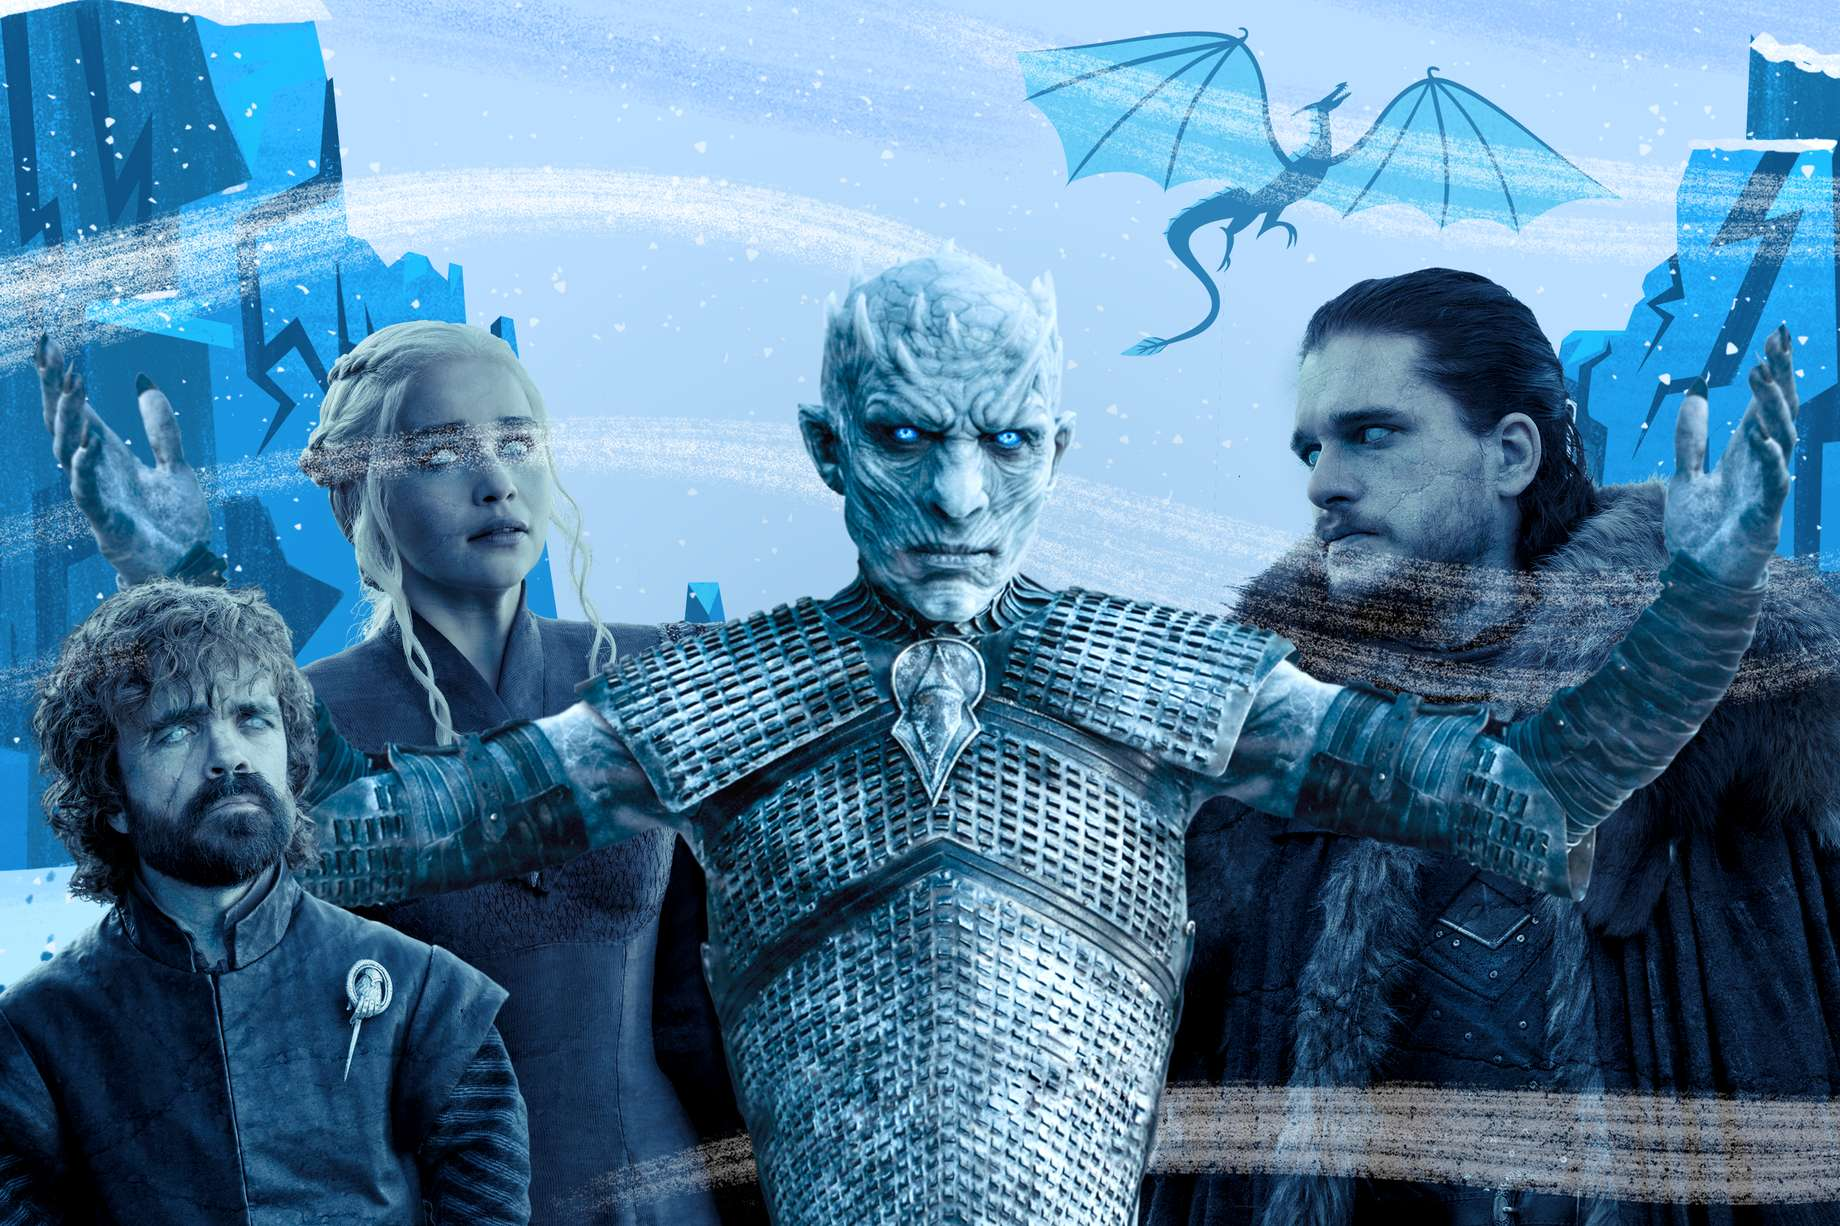 Game of Thrones Ending Theory: It's All About Climate Change - Thrillist